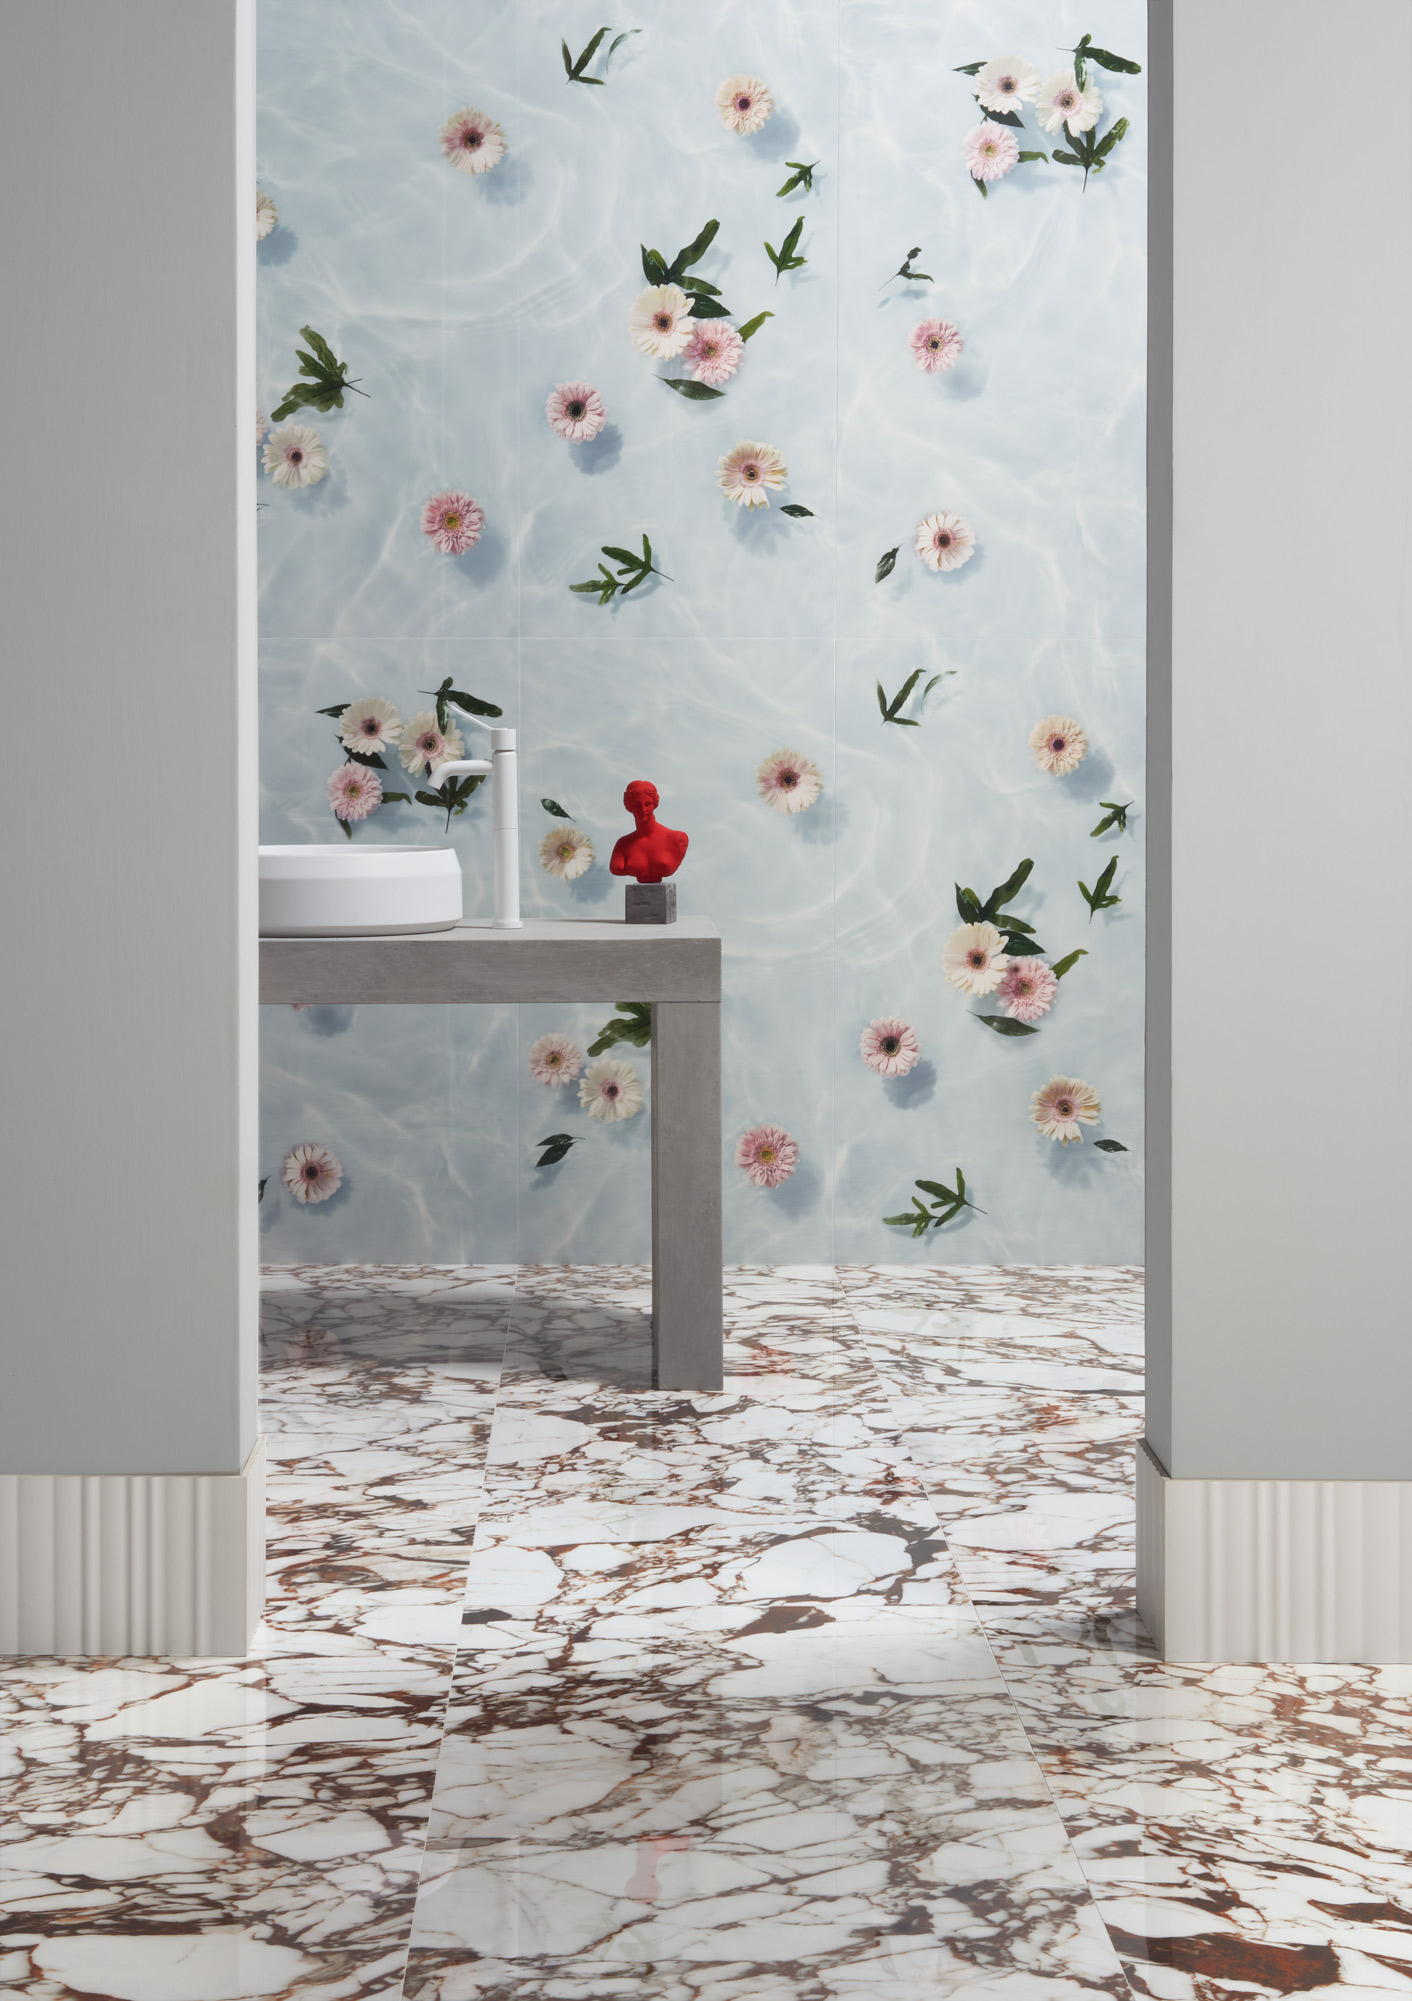 "Wall Paper41 Lux Louis 60x120 24""x48"" - Parallel 20x60 8""x24"" - Floor Pulp Red Double Polished 60x120 24""x48"""